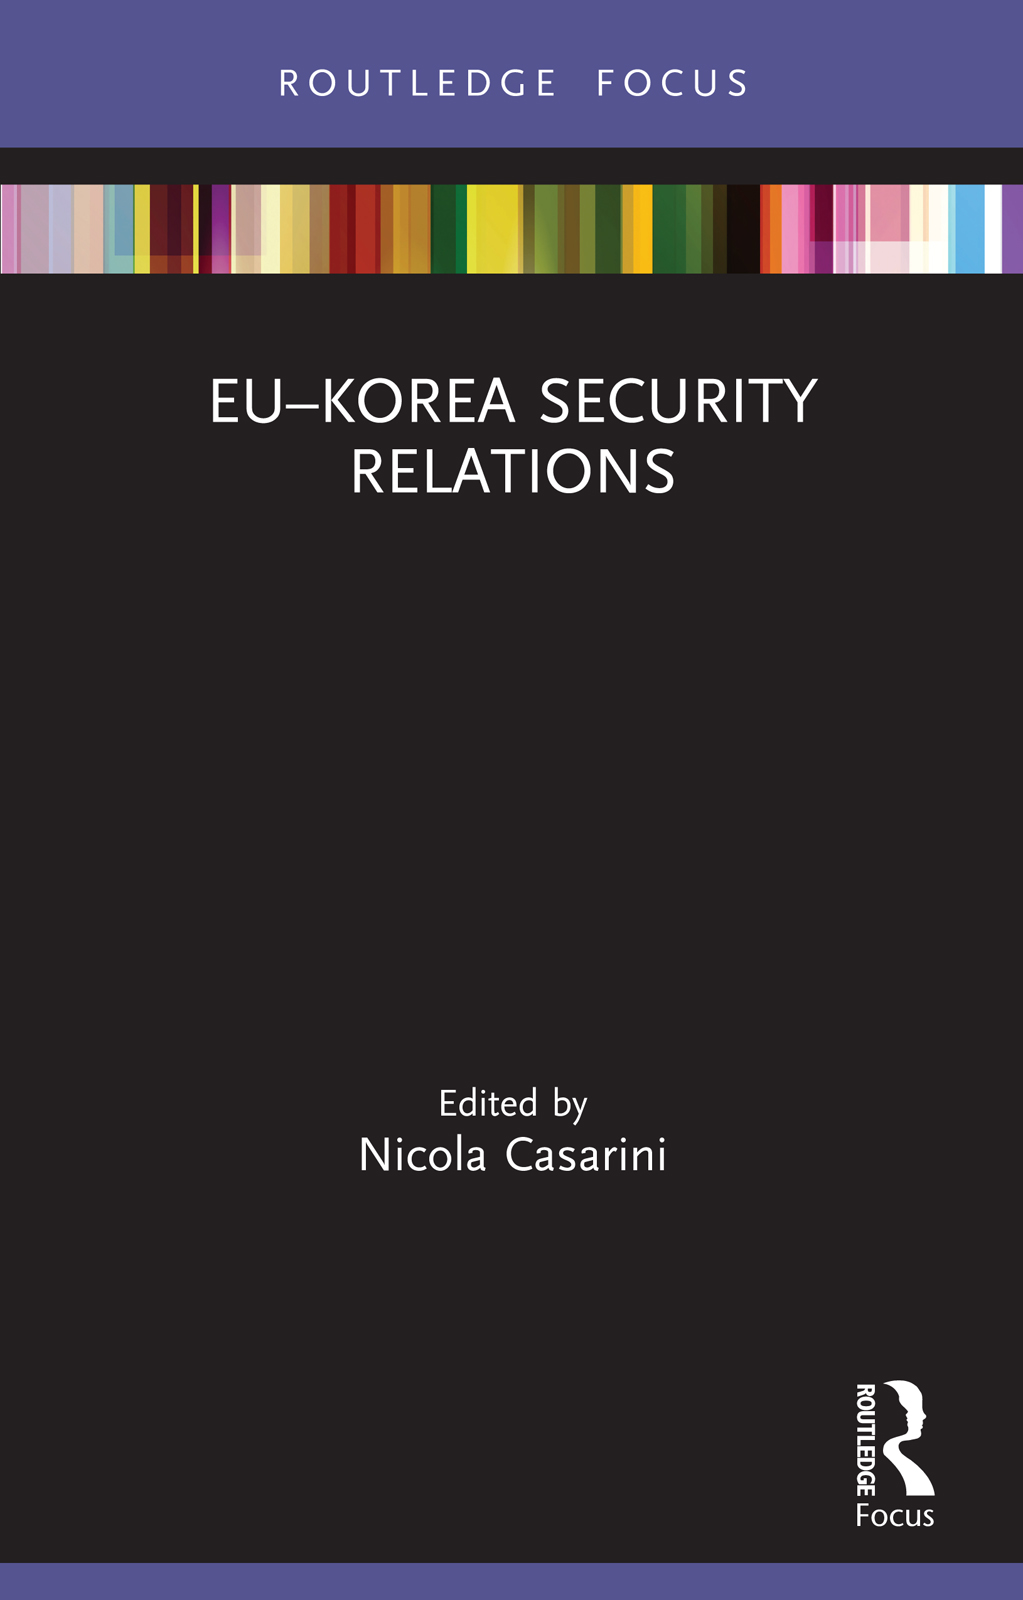 EU–Korea security relations in the context of EU security policy in East Asia